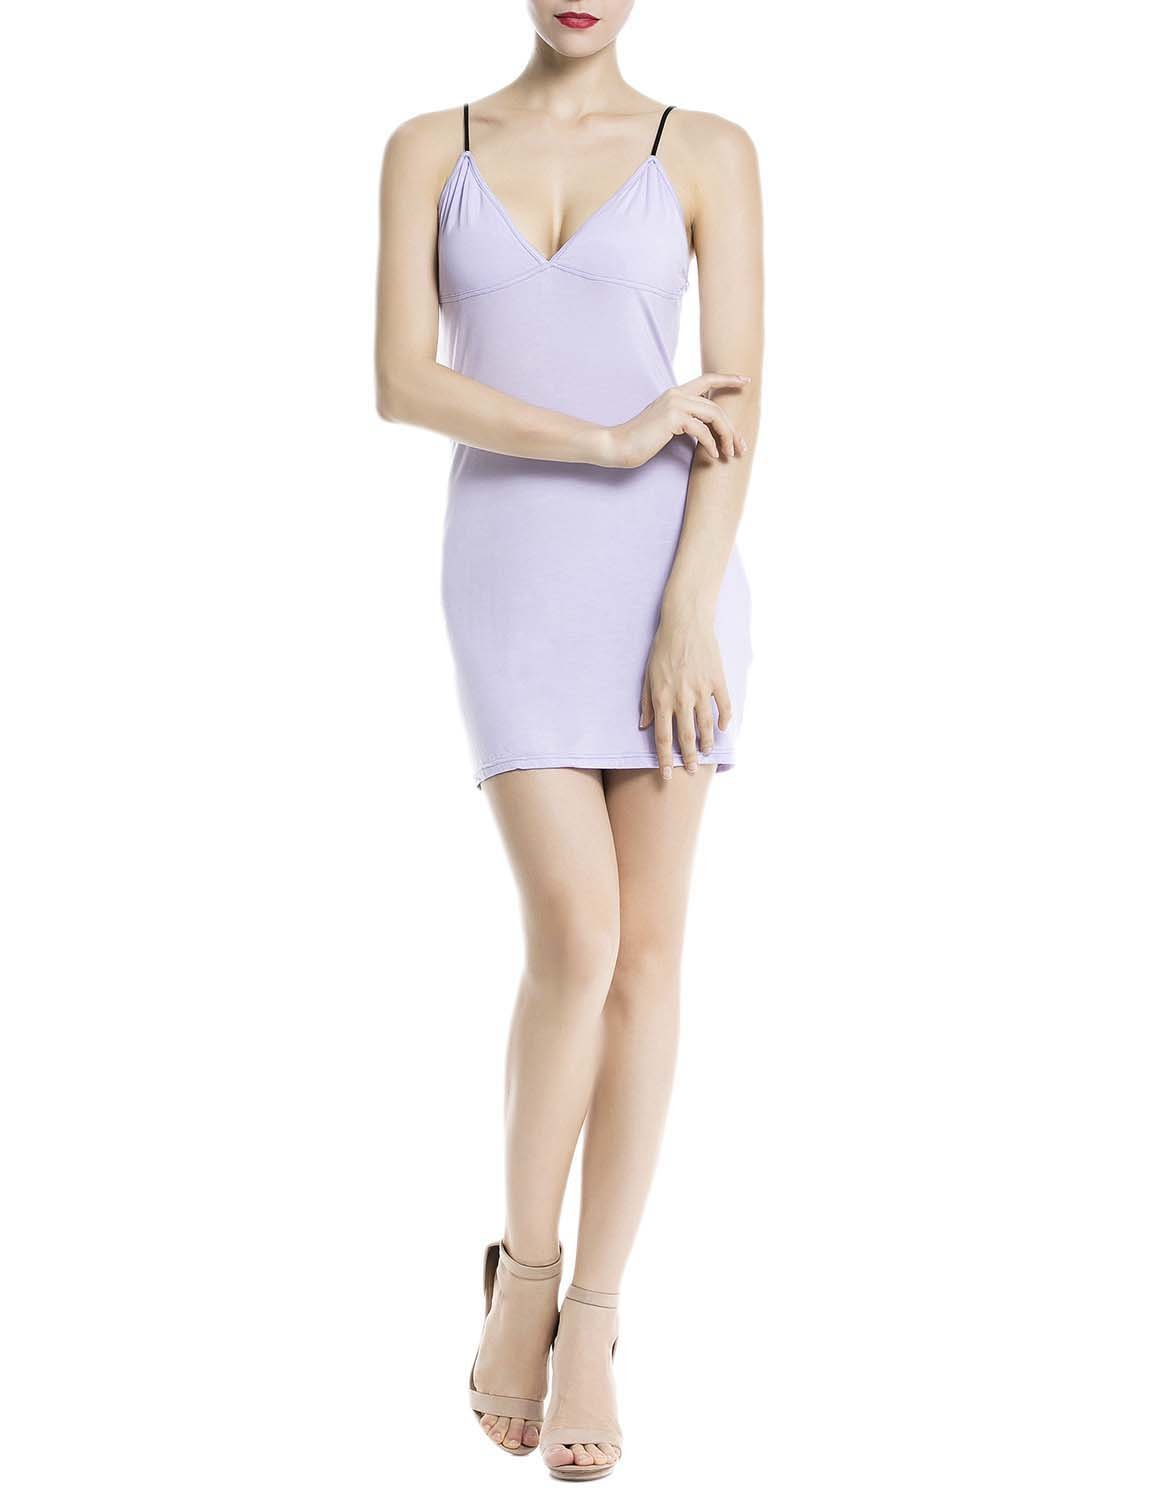 Women's Cotton Slips For Under Dress Spaghetti Strap Mid-Thigh Full Slip, Size: 2XL, Lilac